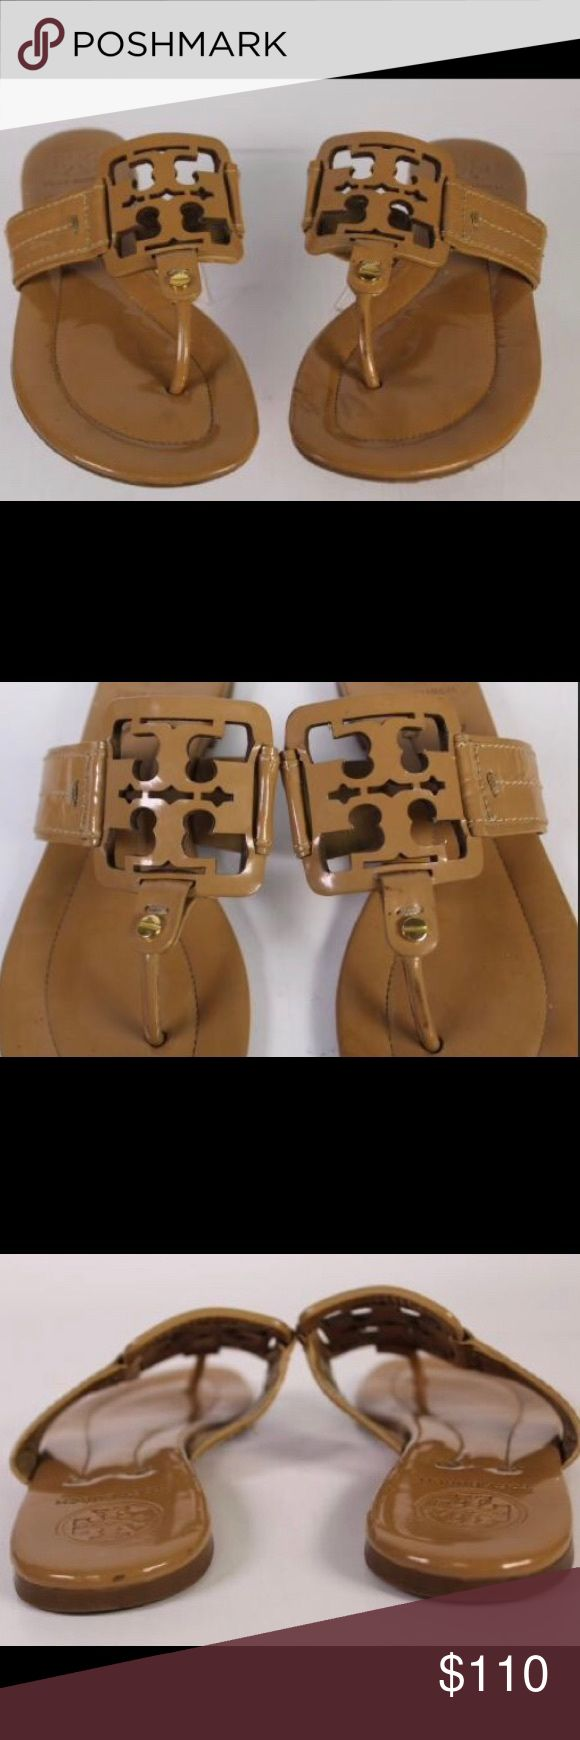 Tory Burch Sandals Tory Burch Thongs Tan Patent Leather Flats Size 7 M  Length is 9.5